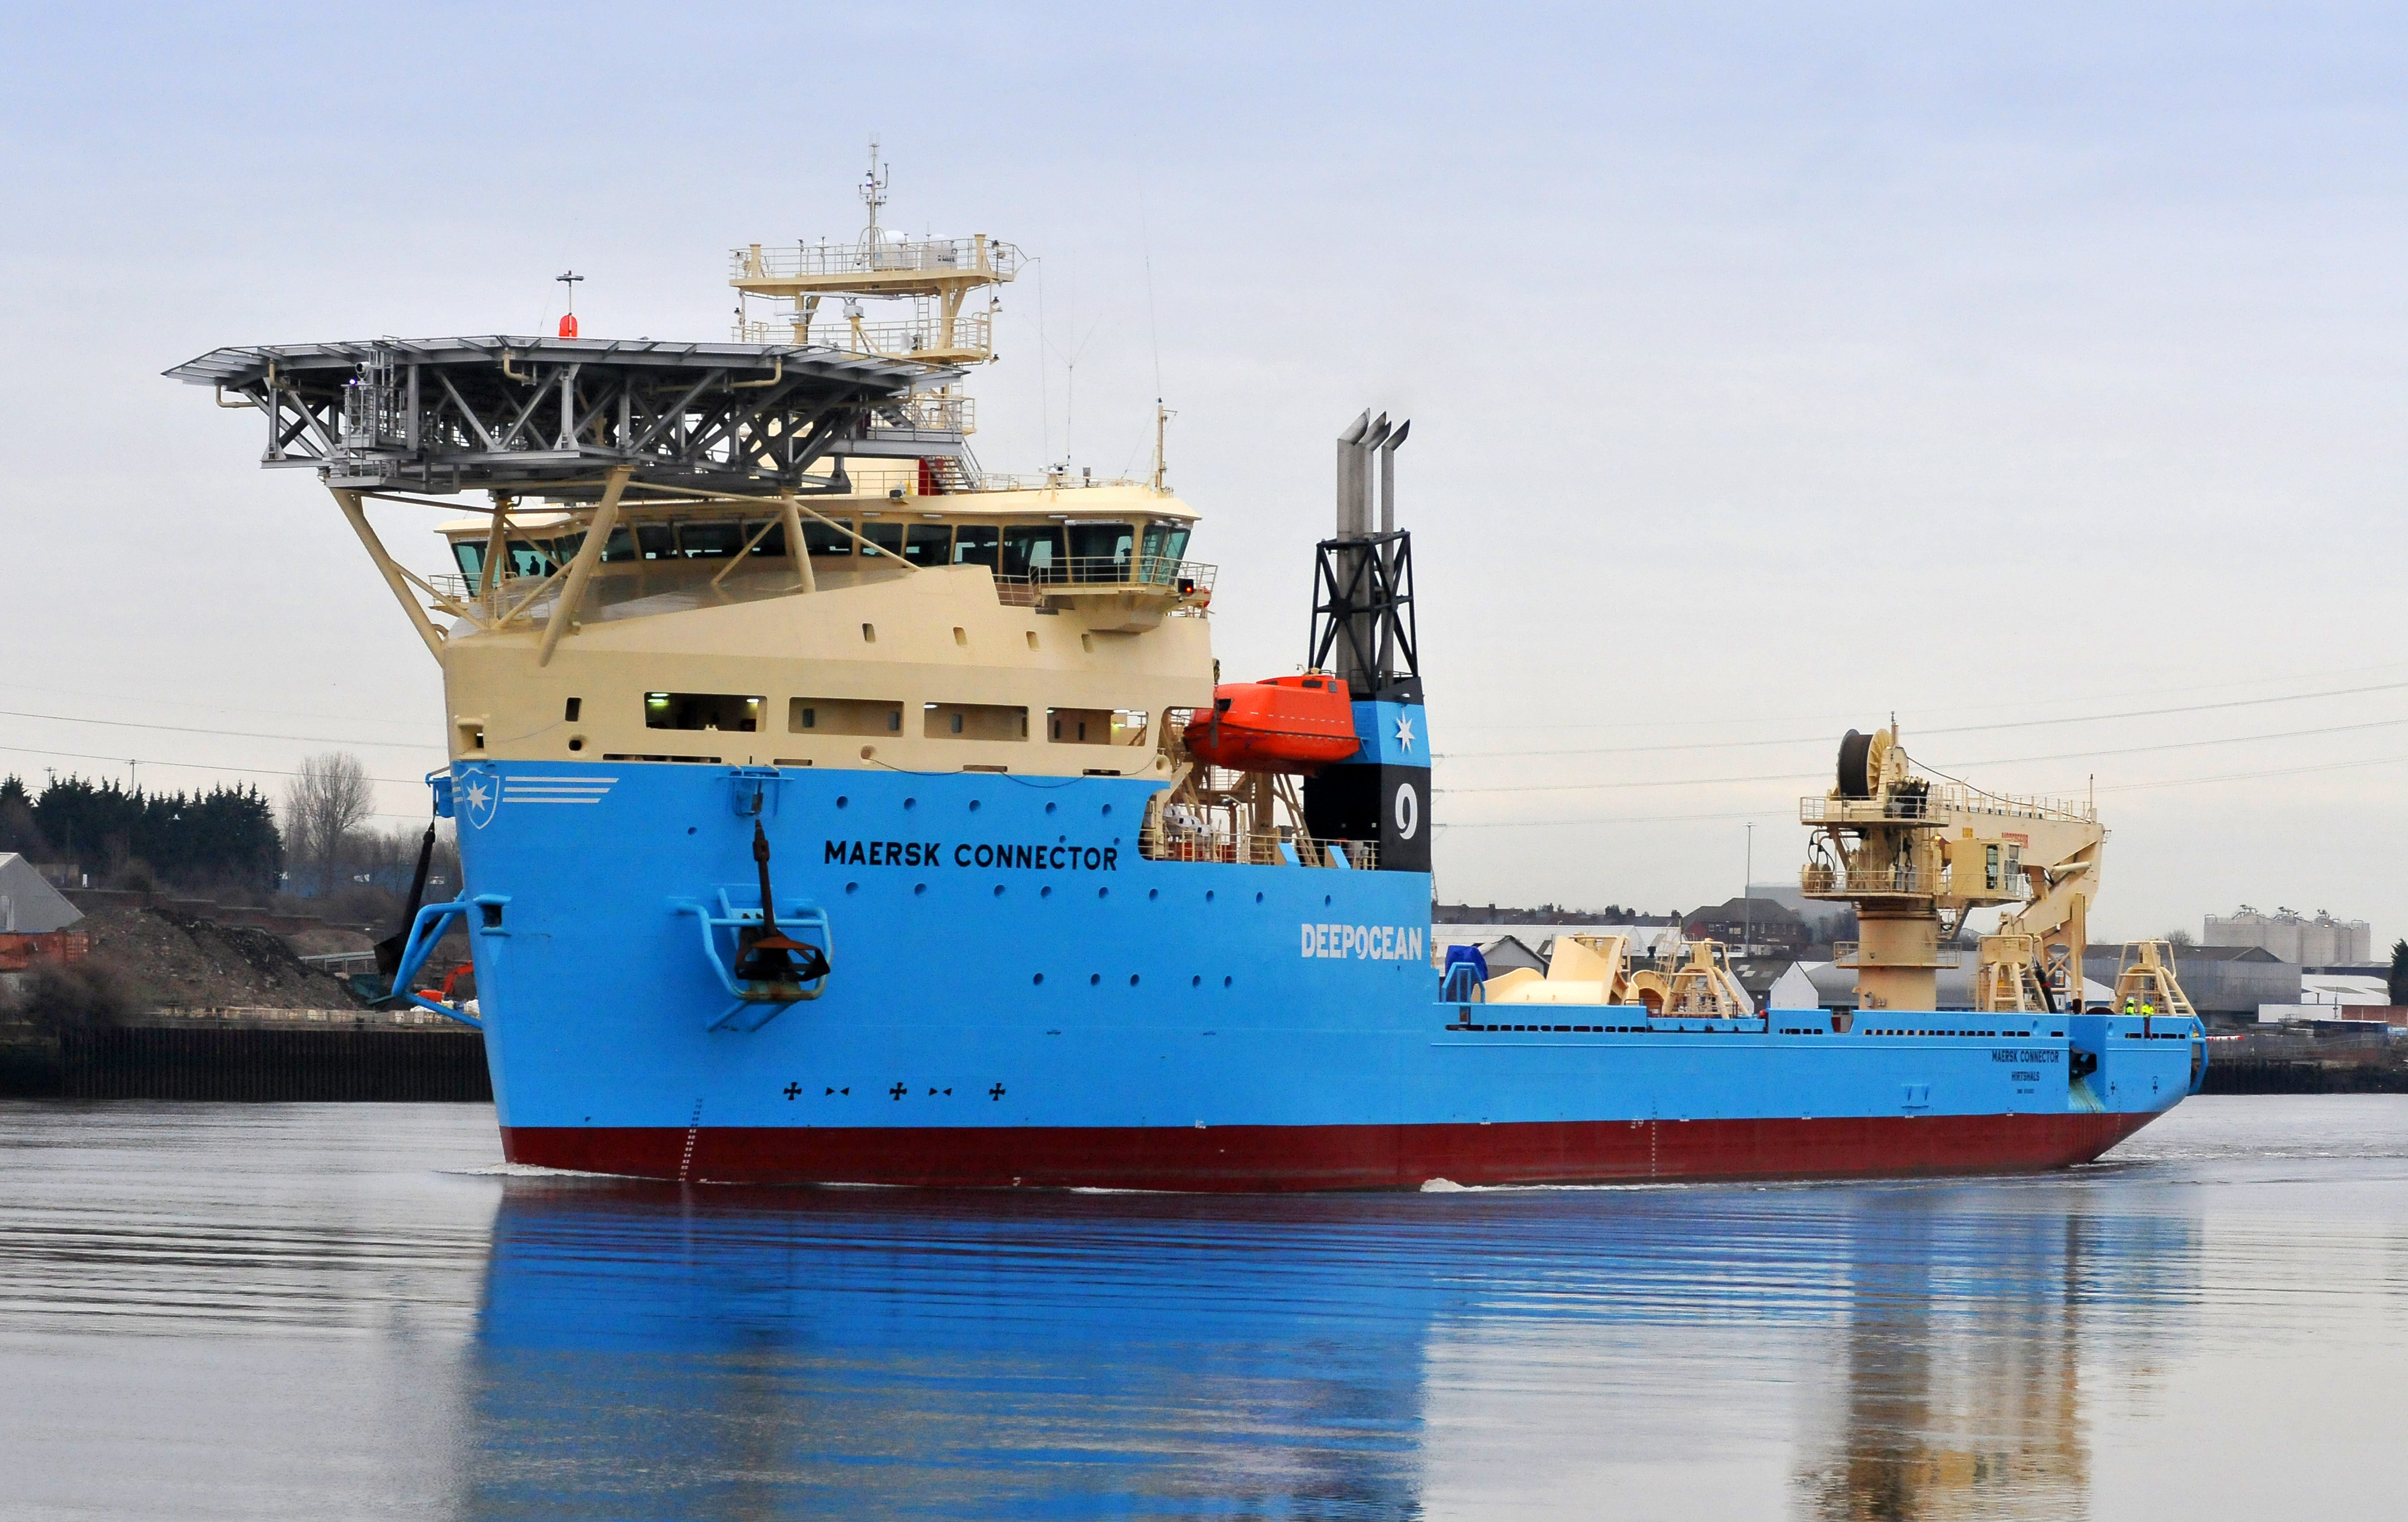 DeepOcean Takes Over Maersk Connector | Offshore Wind